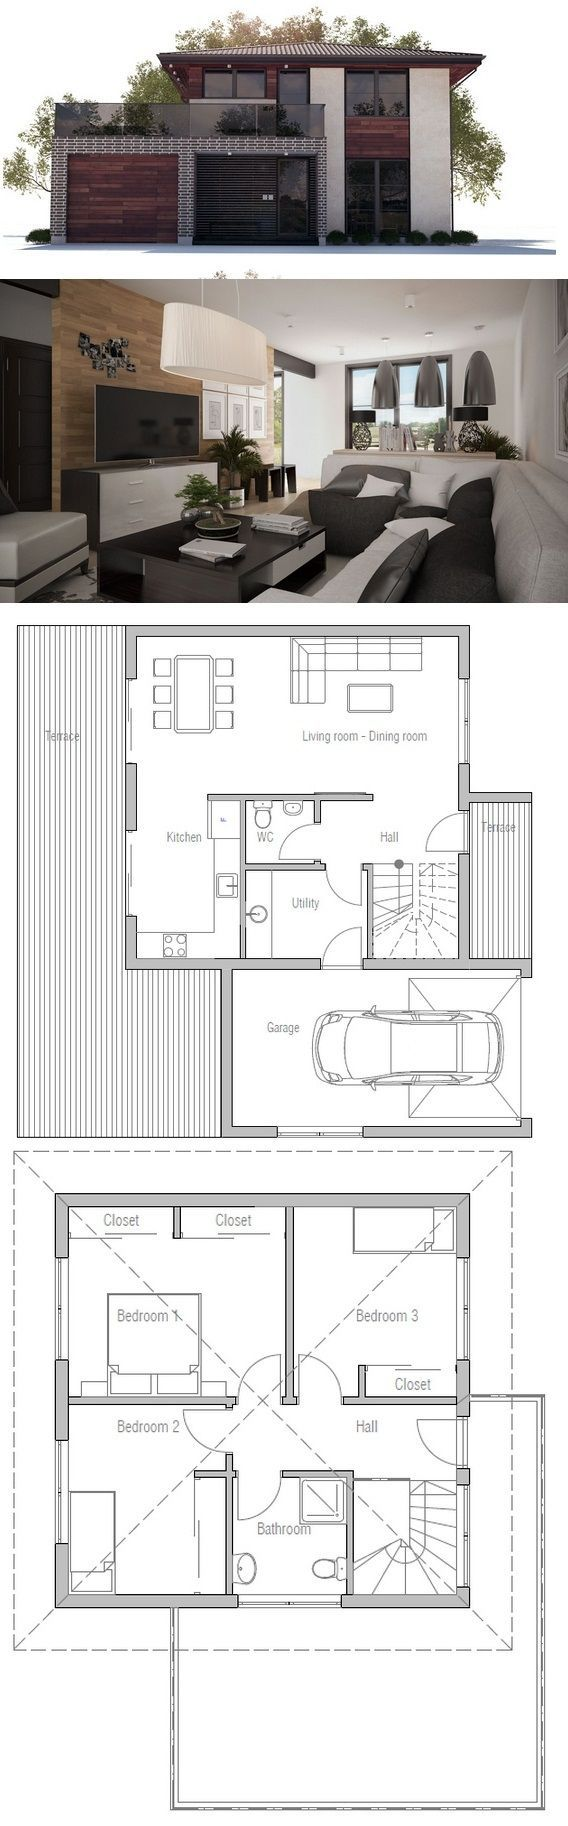 House Plan from ConceptHome.com Small House Plan: House Plan from…